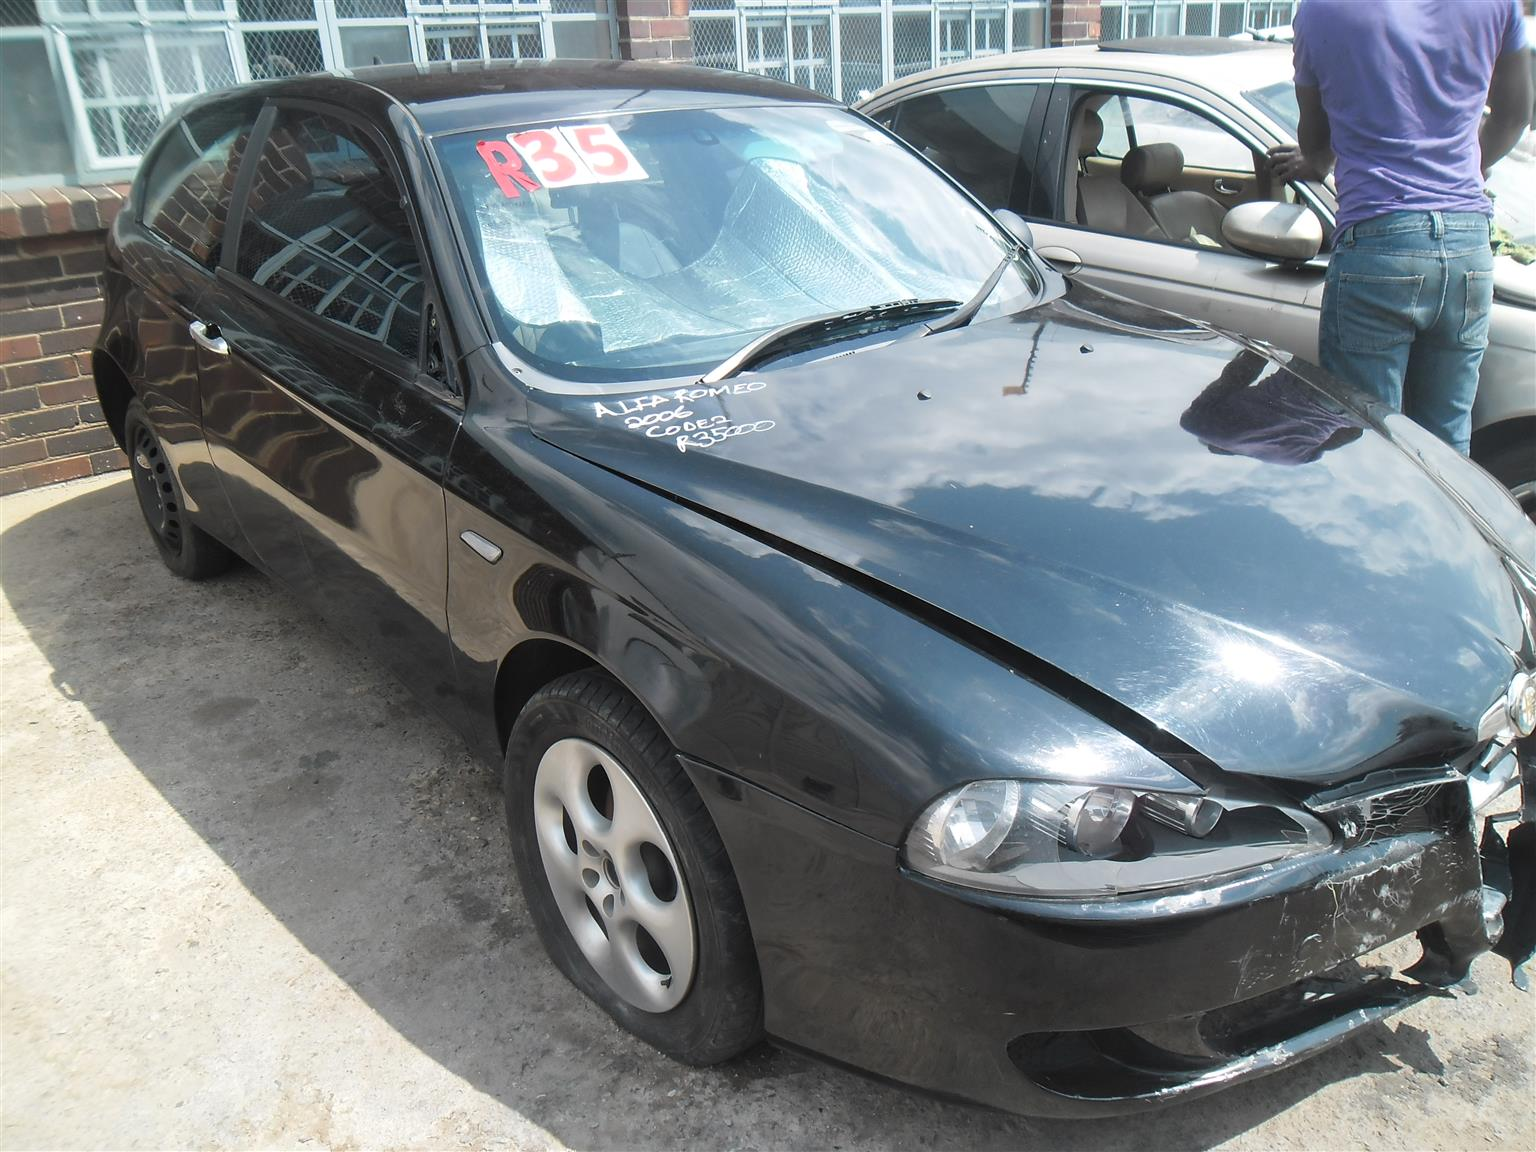 ALFA ROMEO STRIPPING FOR PARTS DOORS FOR SALE Junk Mail - Alfa romeo 147 for sale